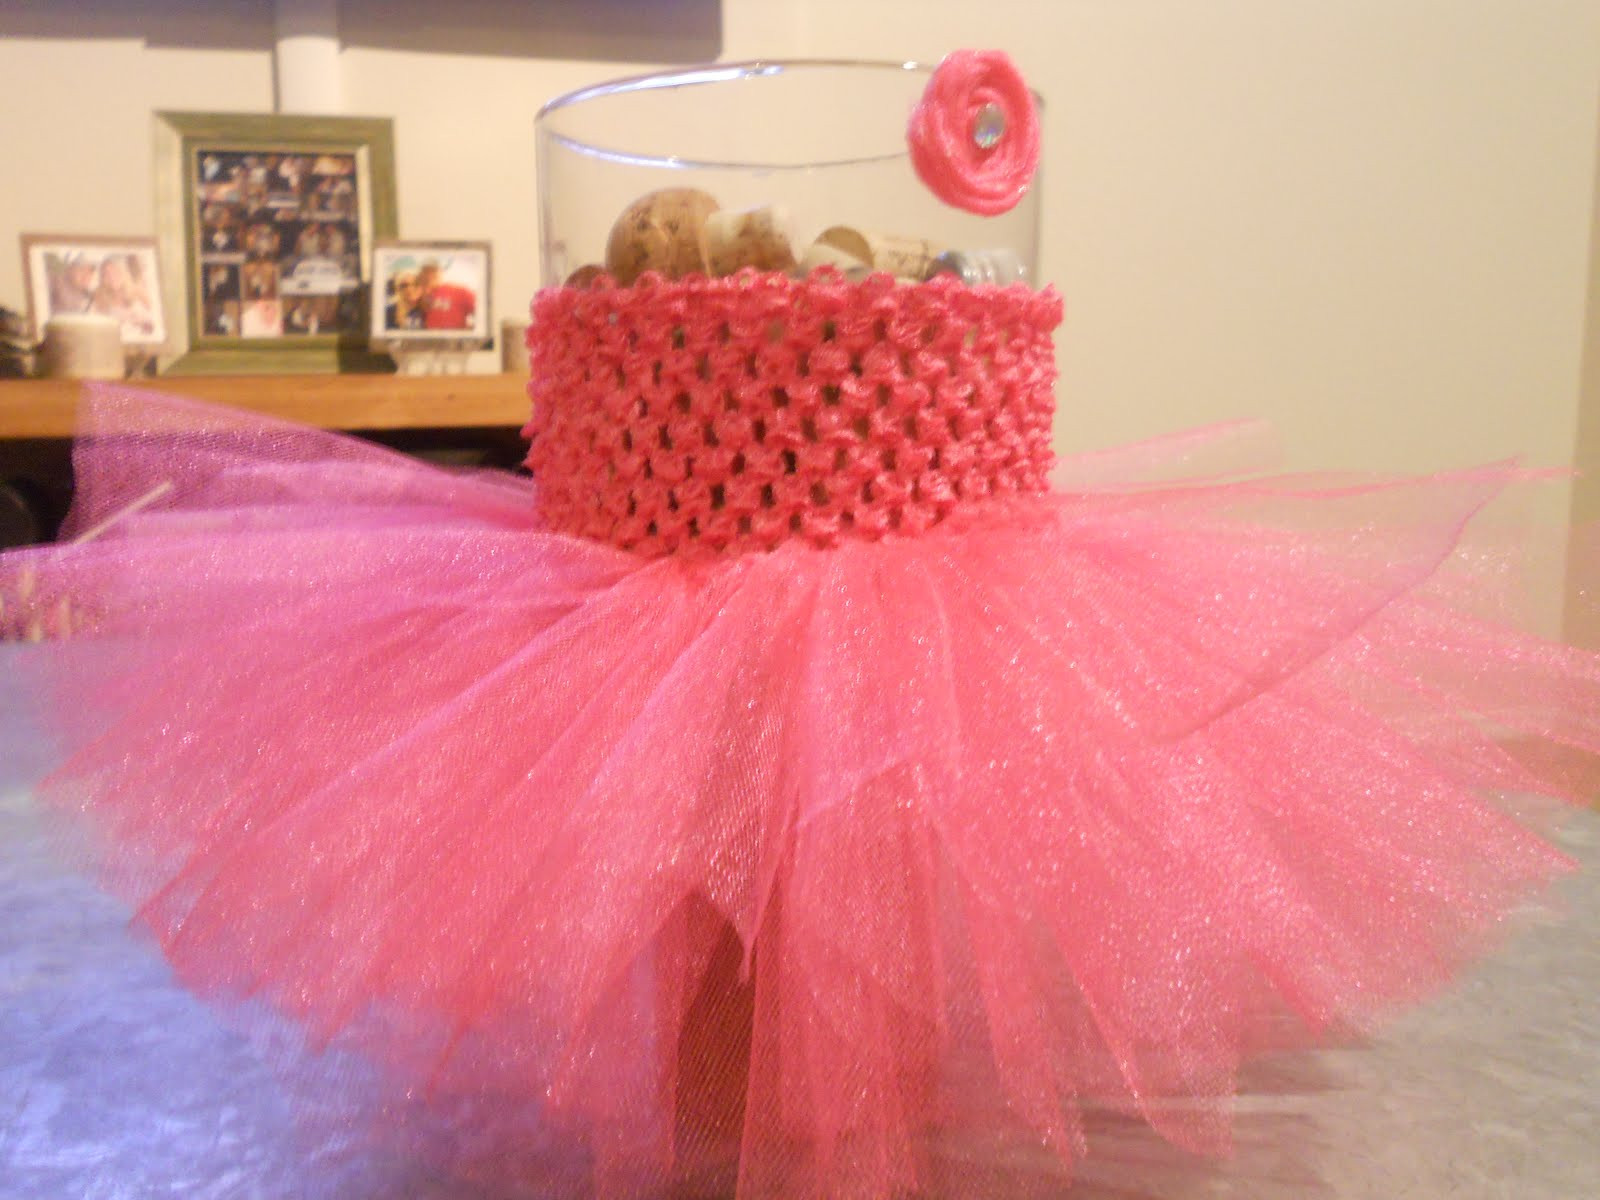 Best ideas about Baby Tutu DIY . Save or Pin Connoisseur of Creativity DIY Handmade No Sew Tutu Now.